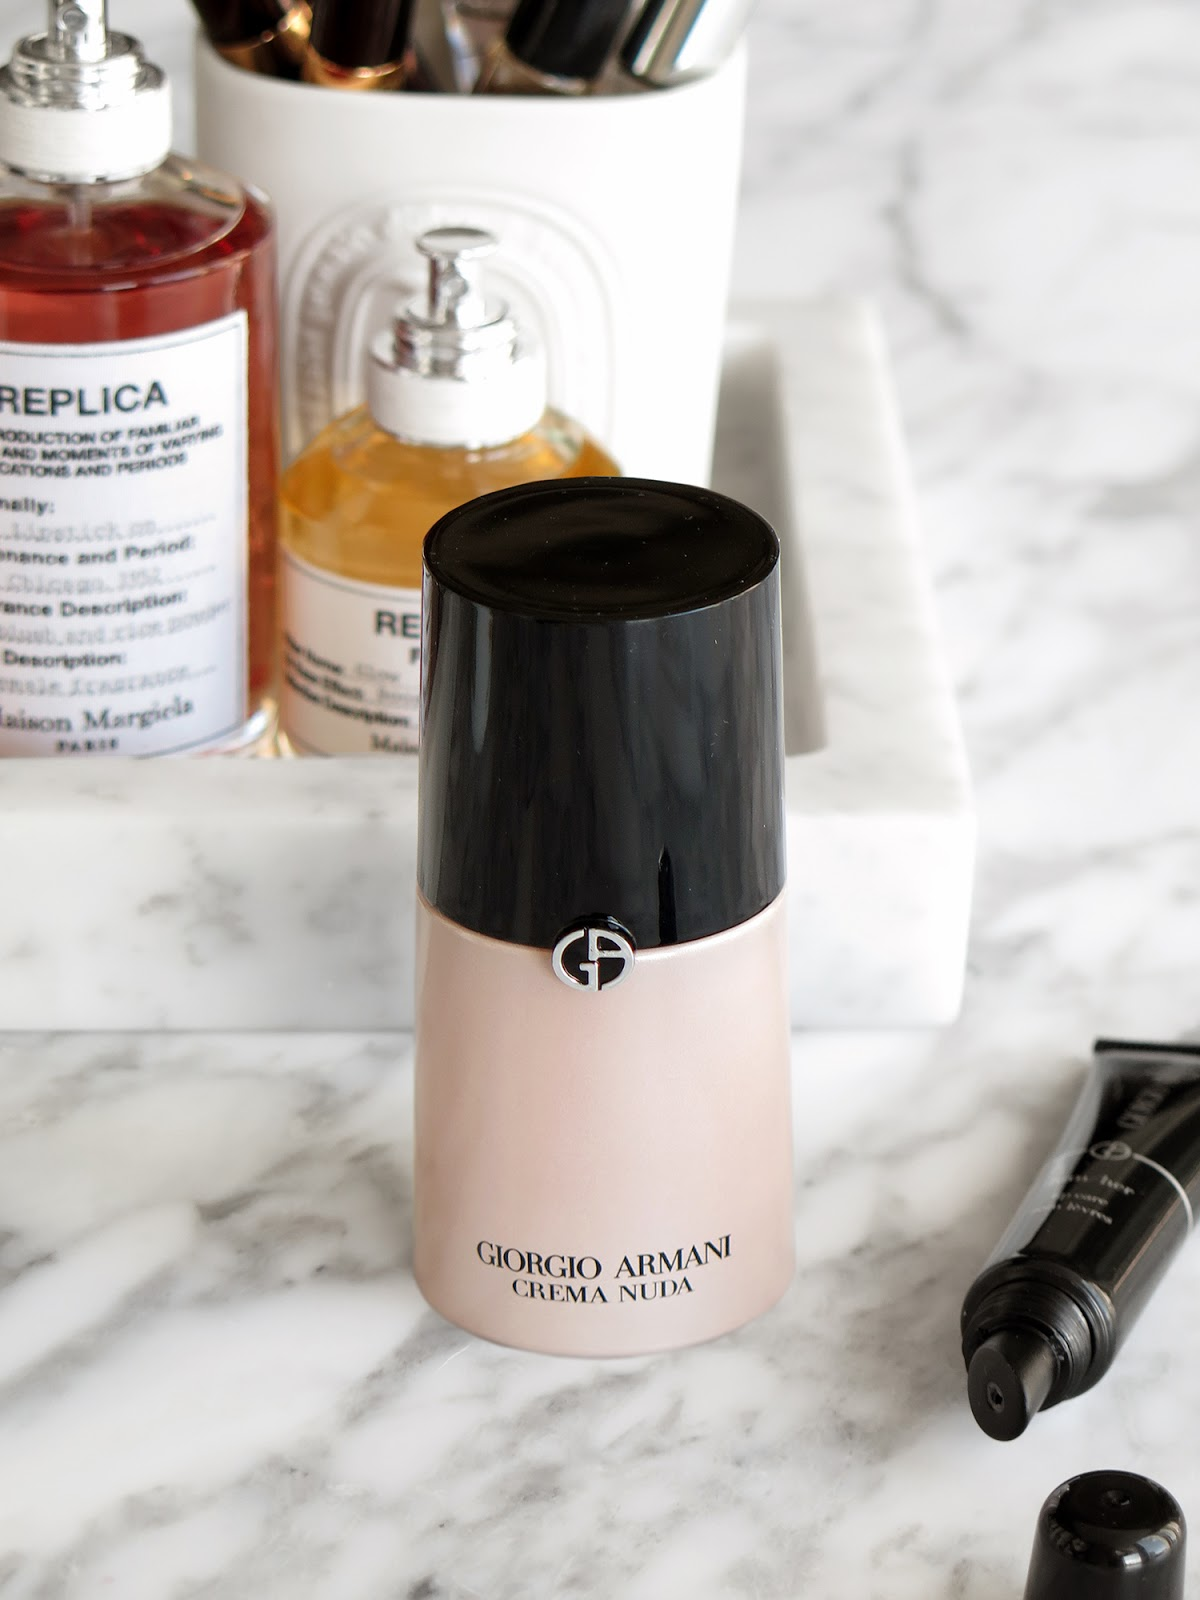 Armani Beauty Crema Nuda Review - The Beauty Look Book